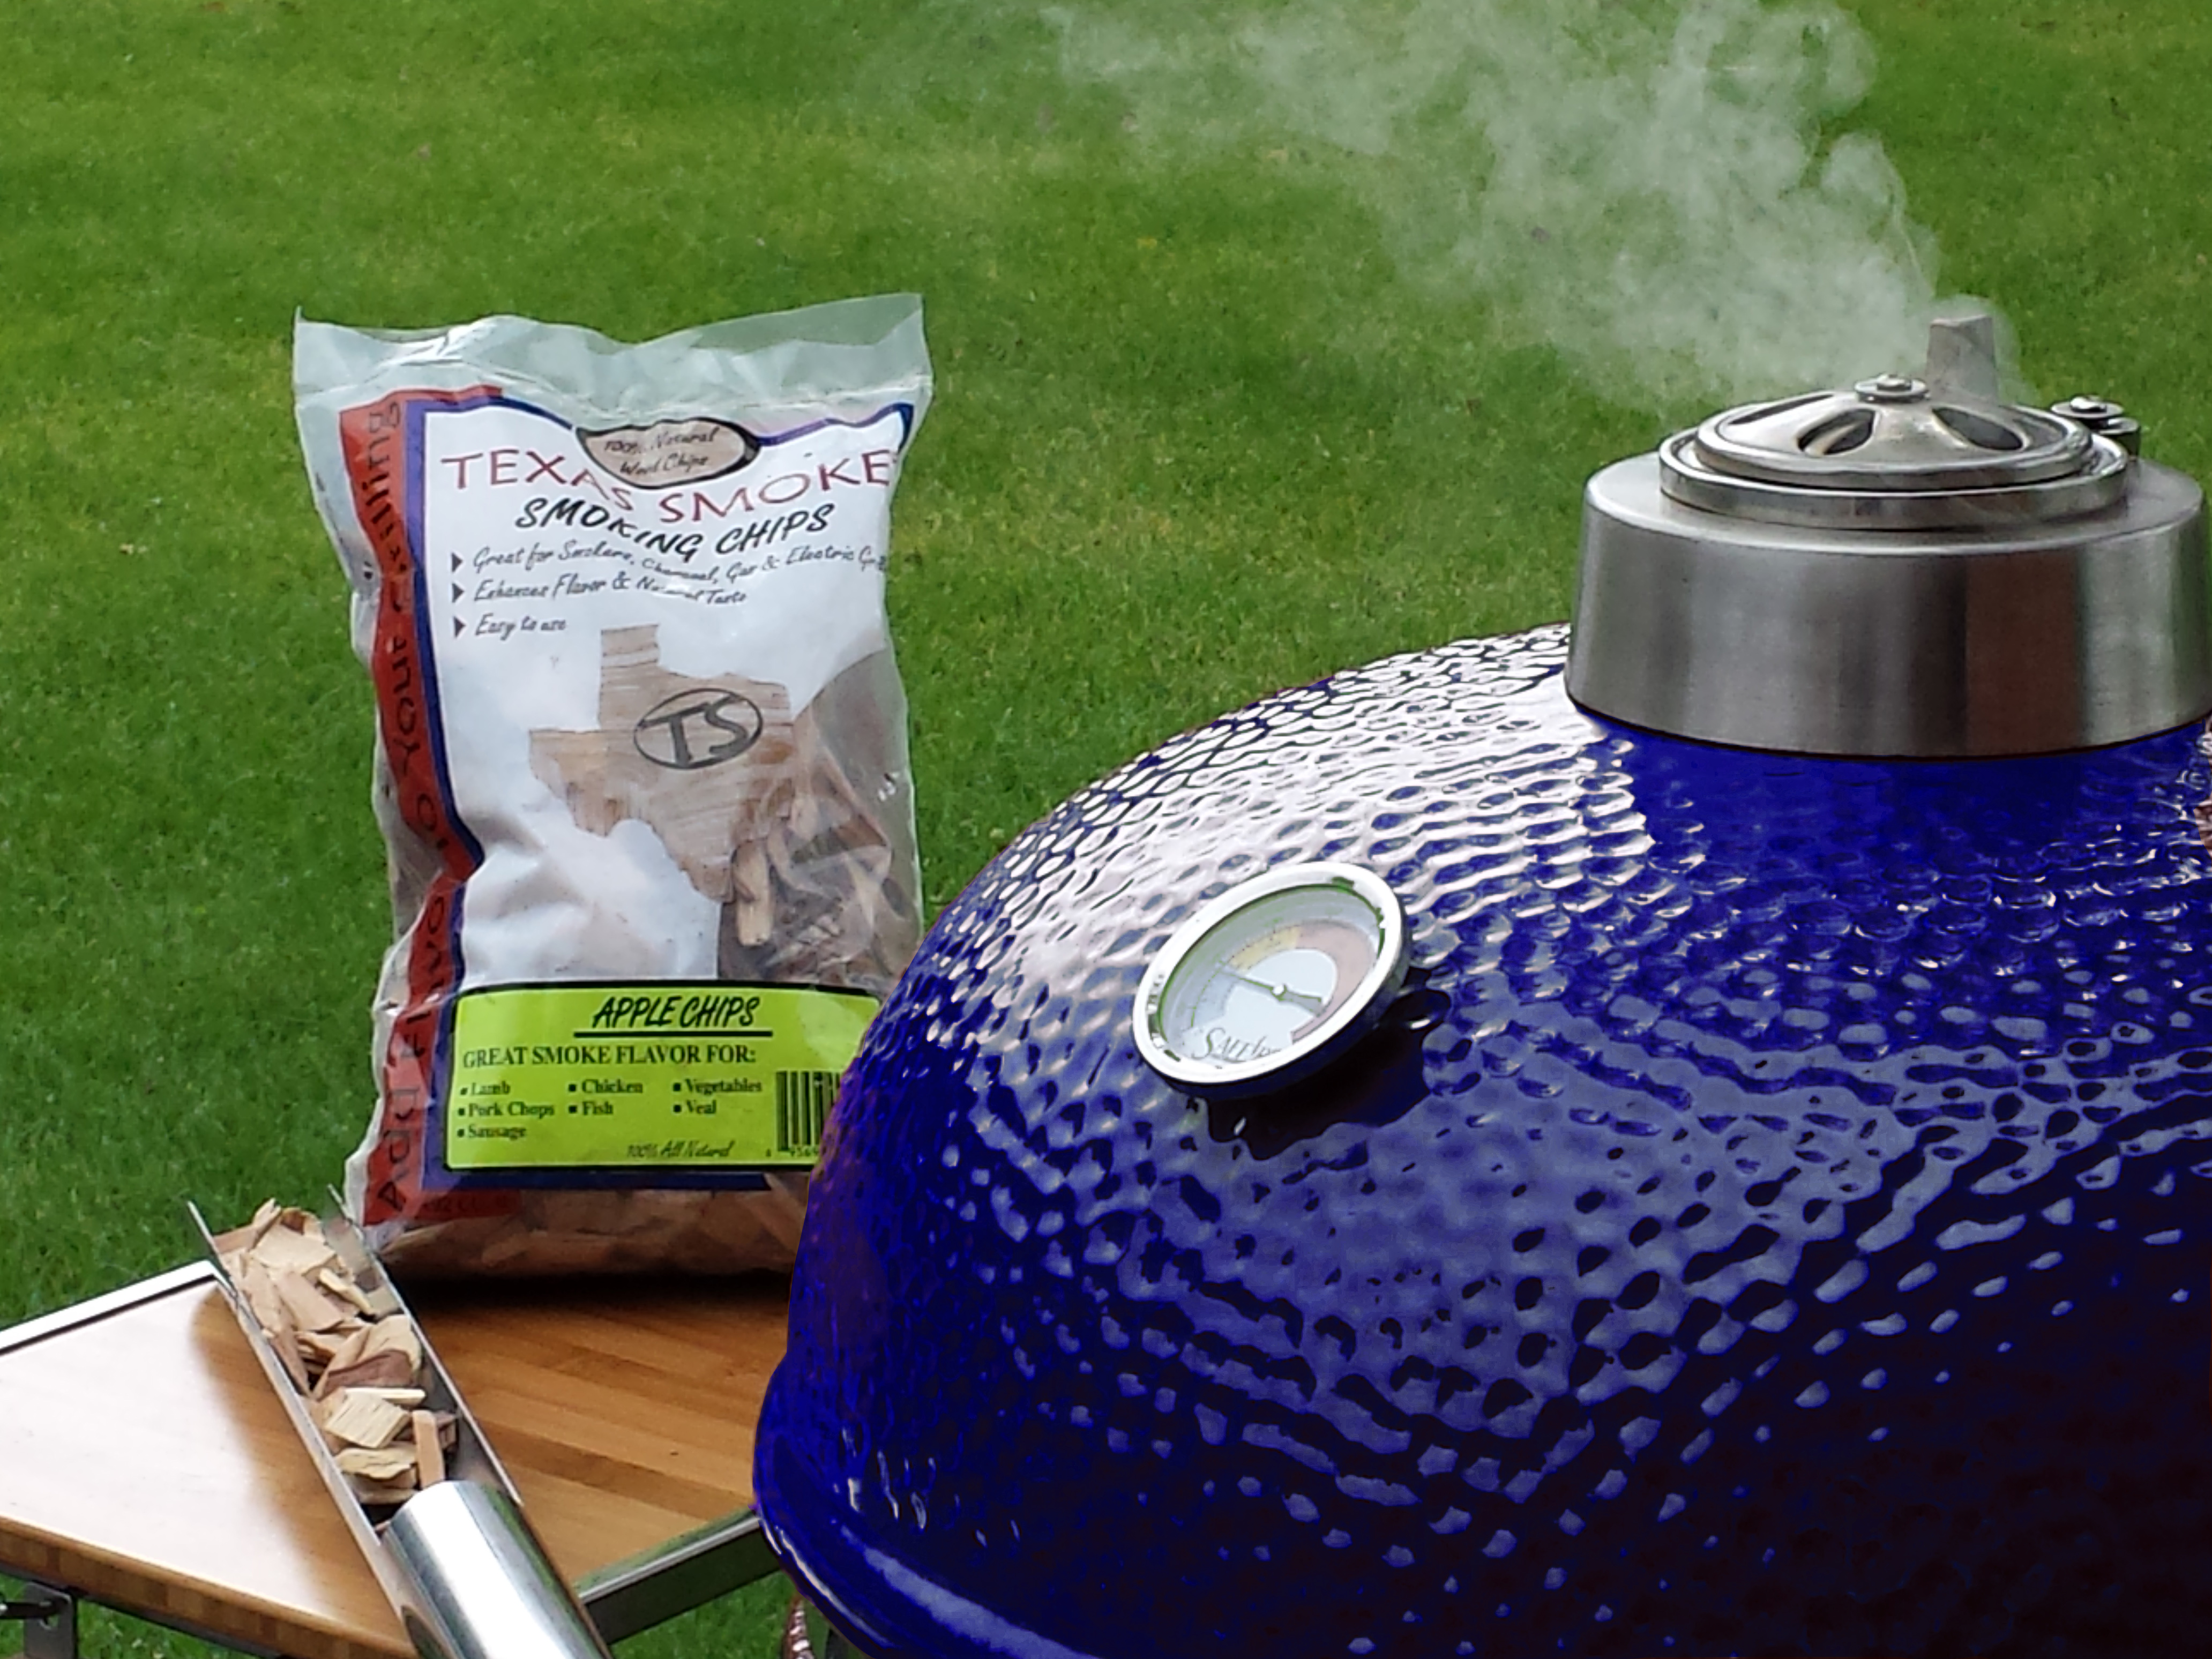 A blue Saffire kamado with steam coming out the top and a bag of wood chips and the smokin' chip feeder tool on the grill's side shelf